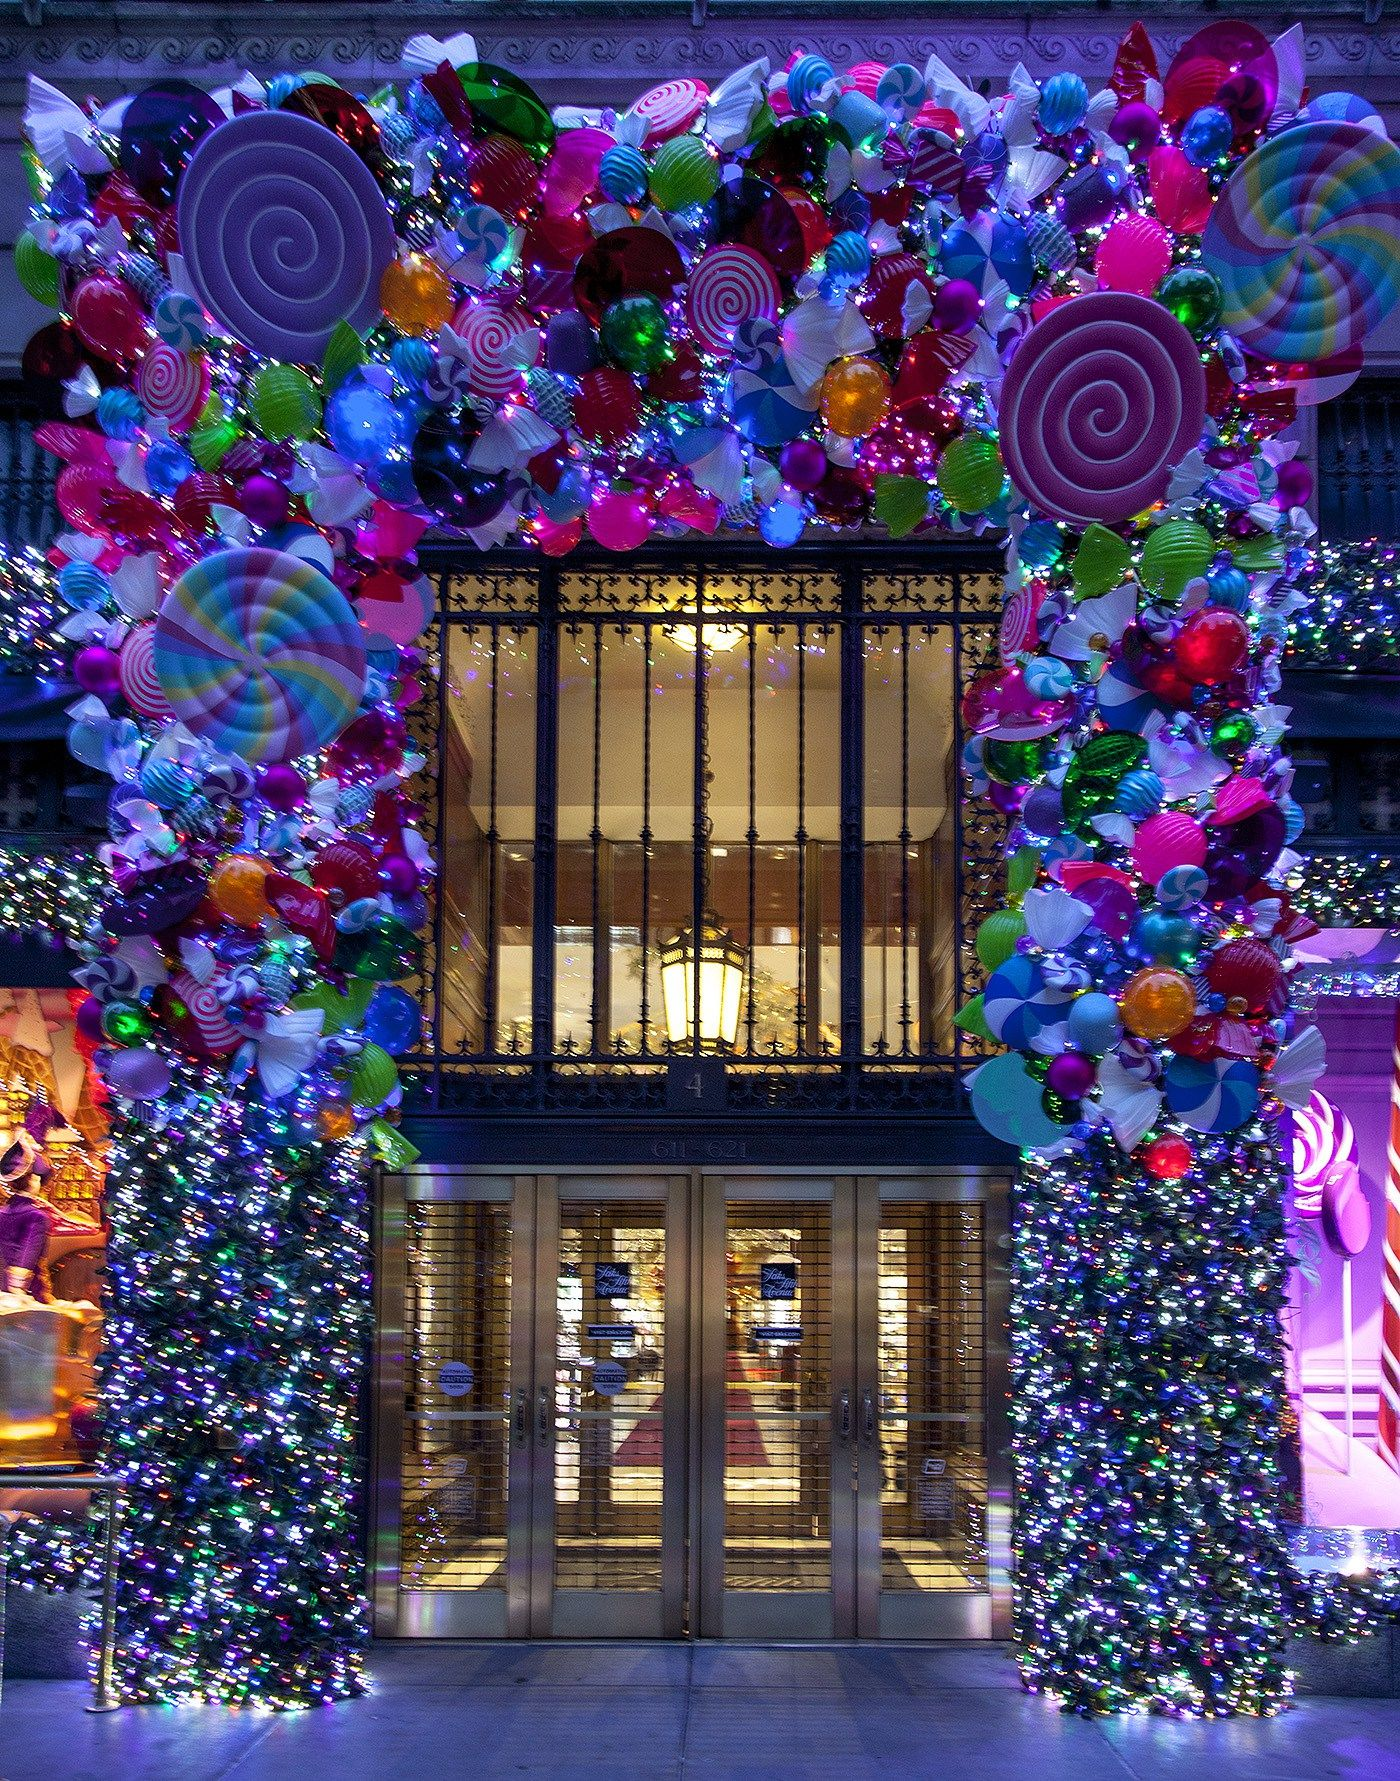 Best Christmas Windows, Christmas Windows New York 2016, New York ...